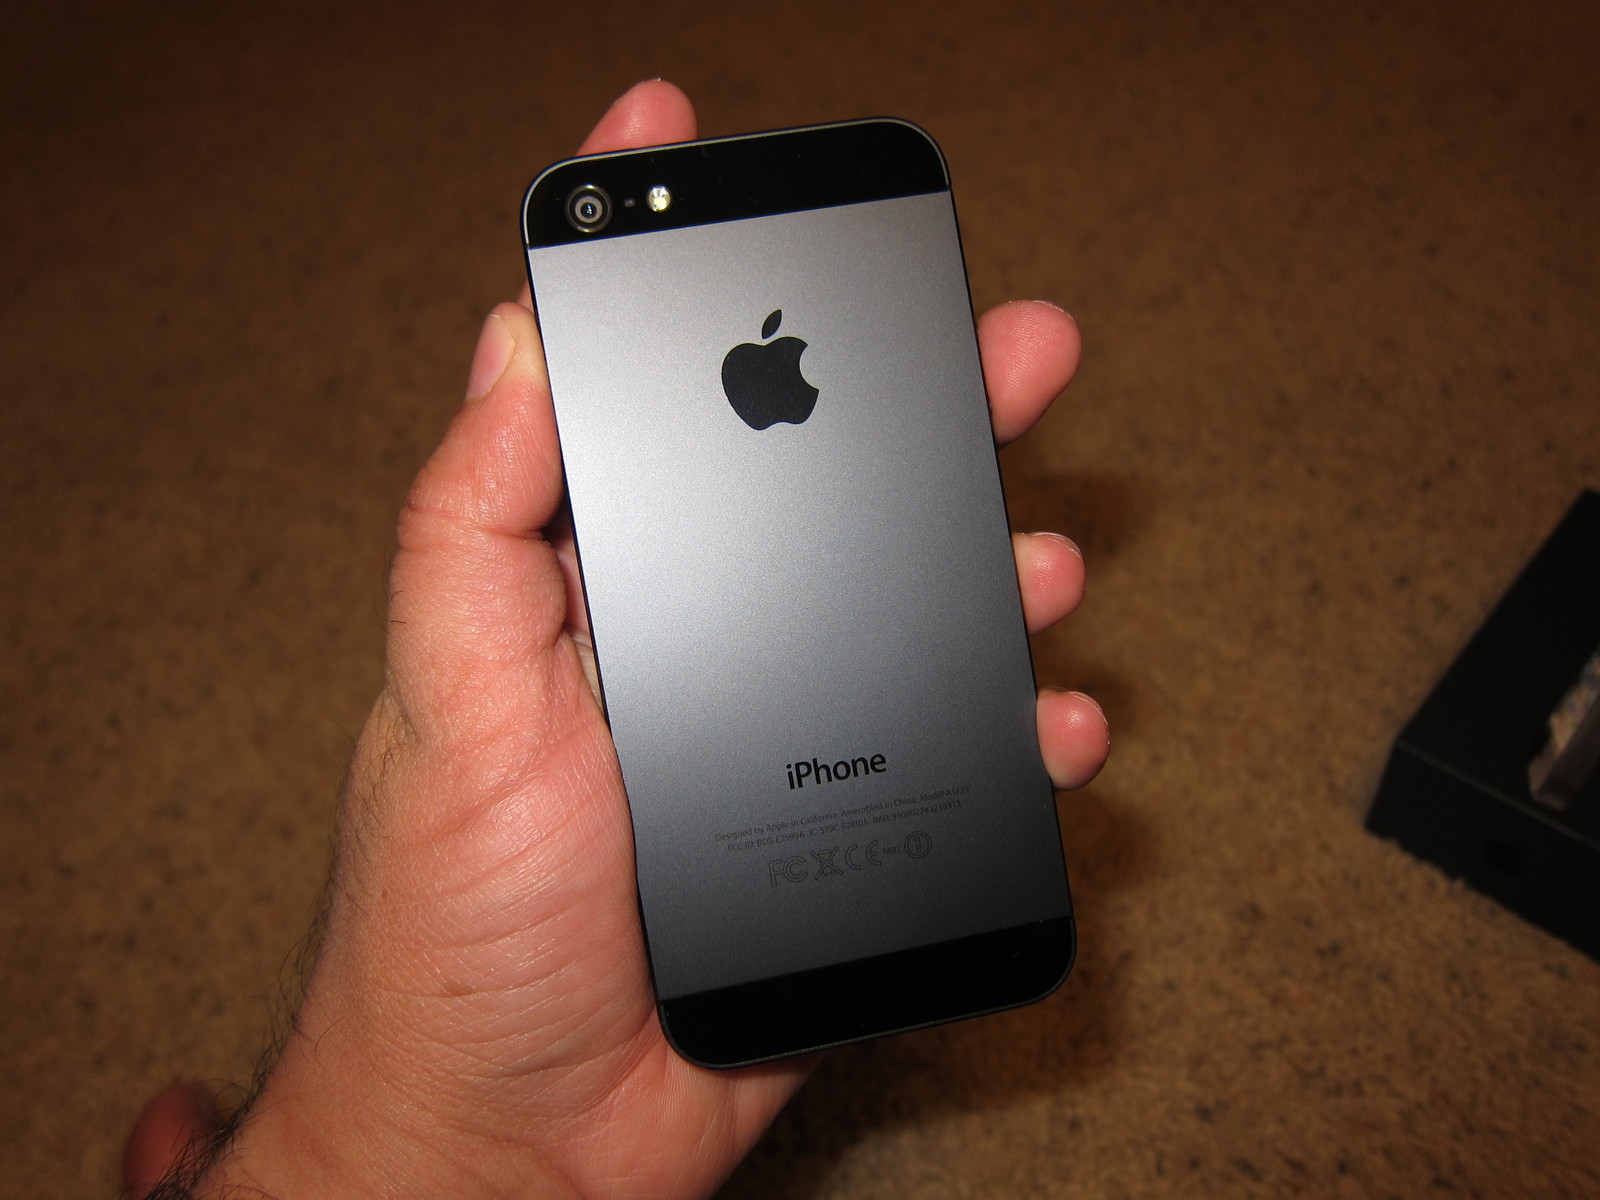 iphone 5 32gb brand new buy apple iphone 5 32gb black factory unlocked 10945